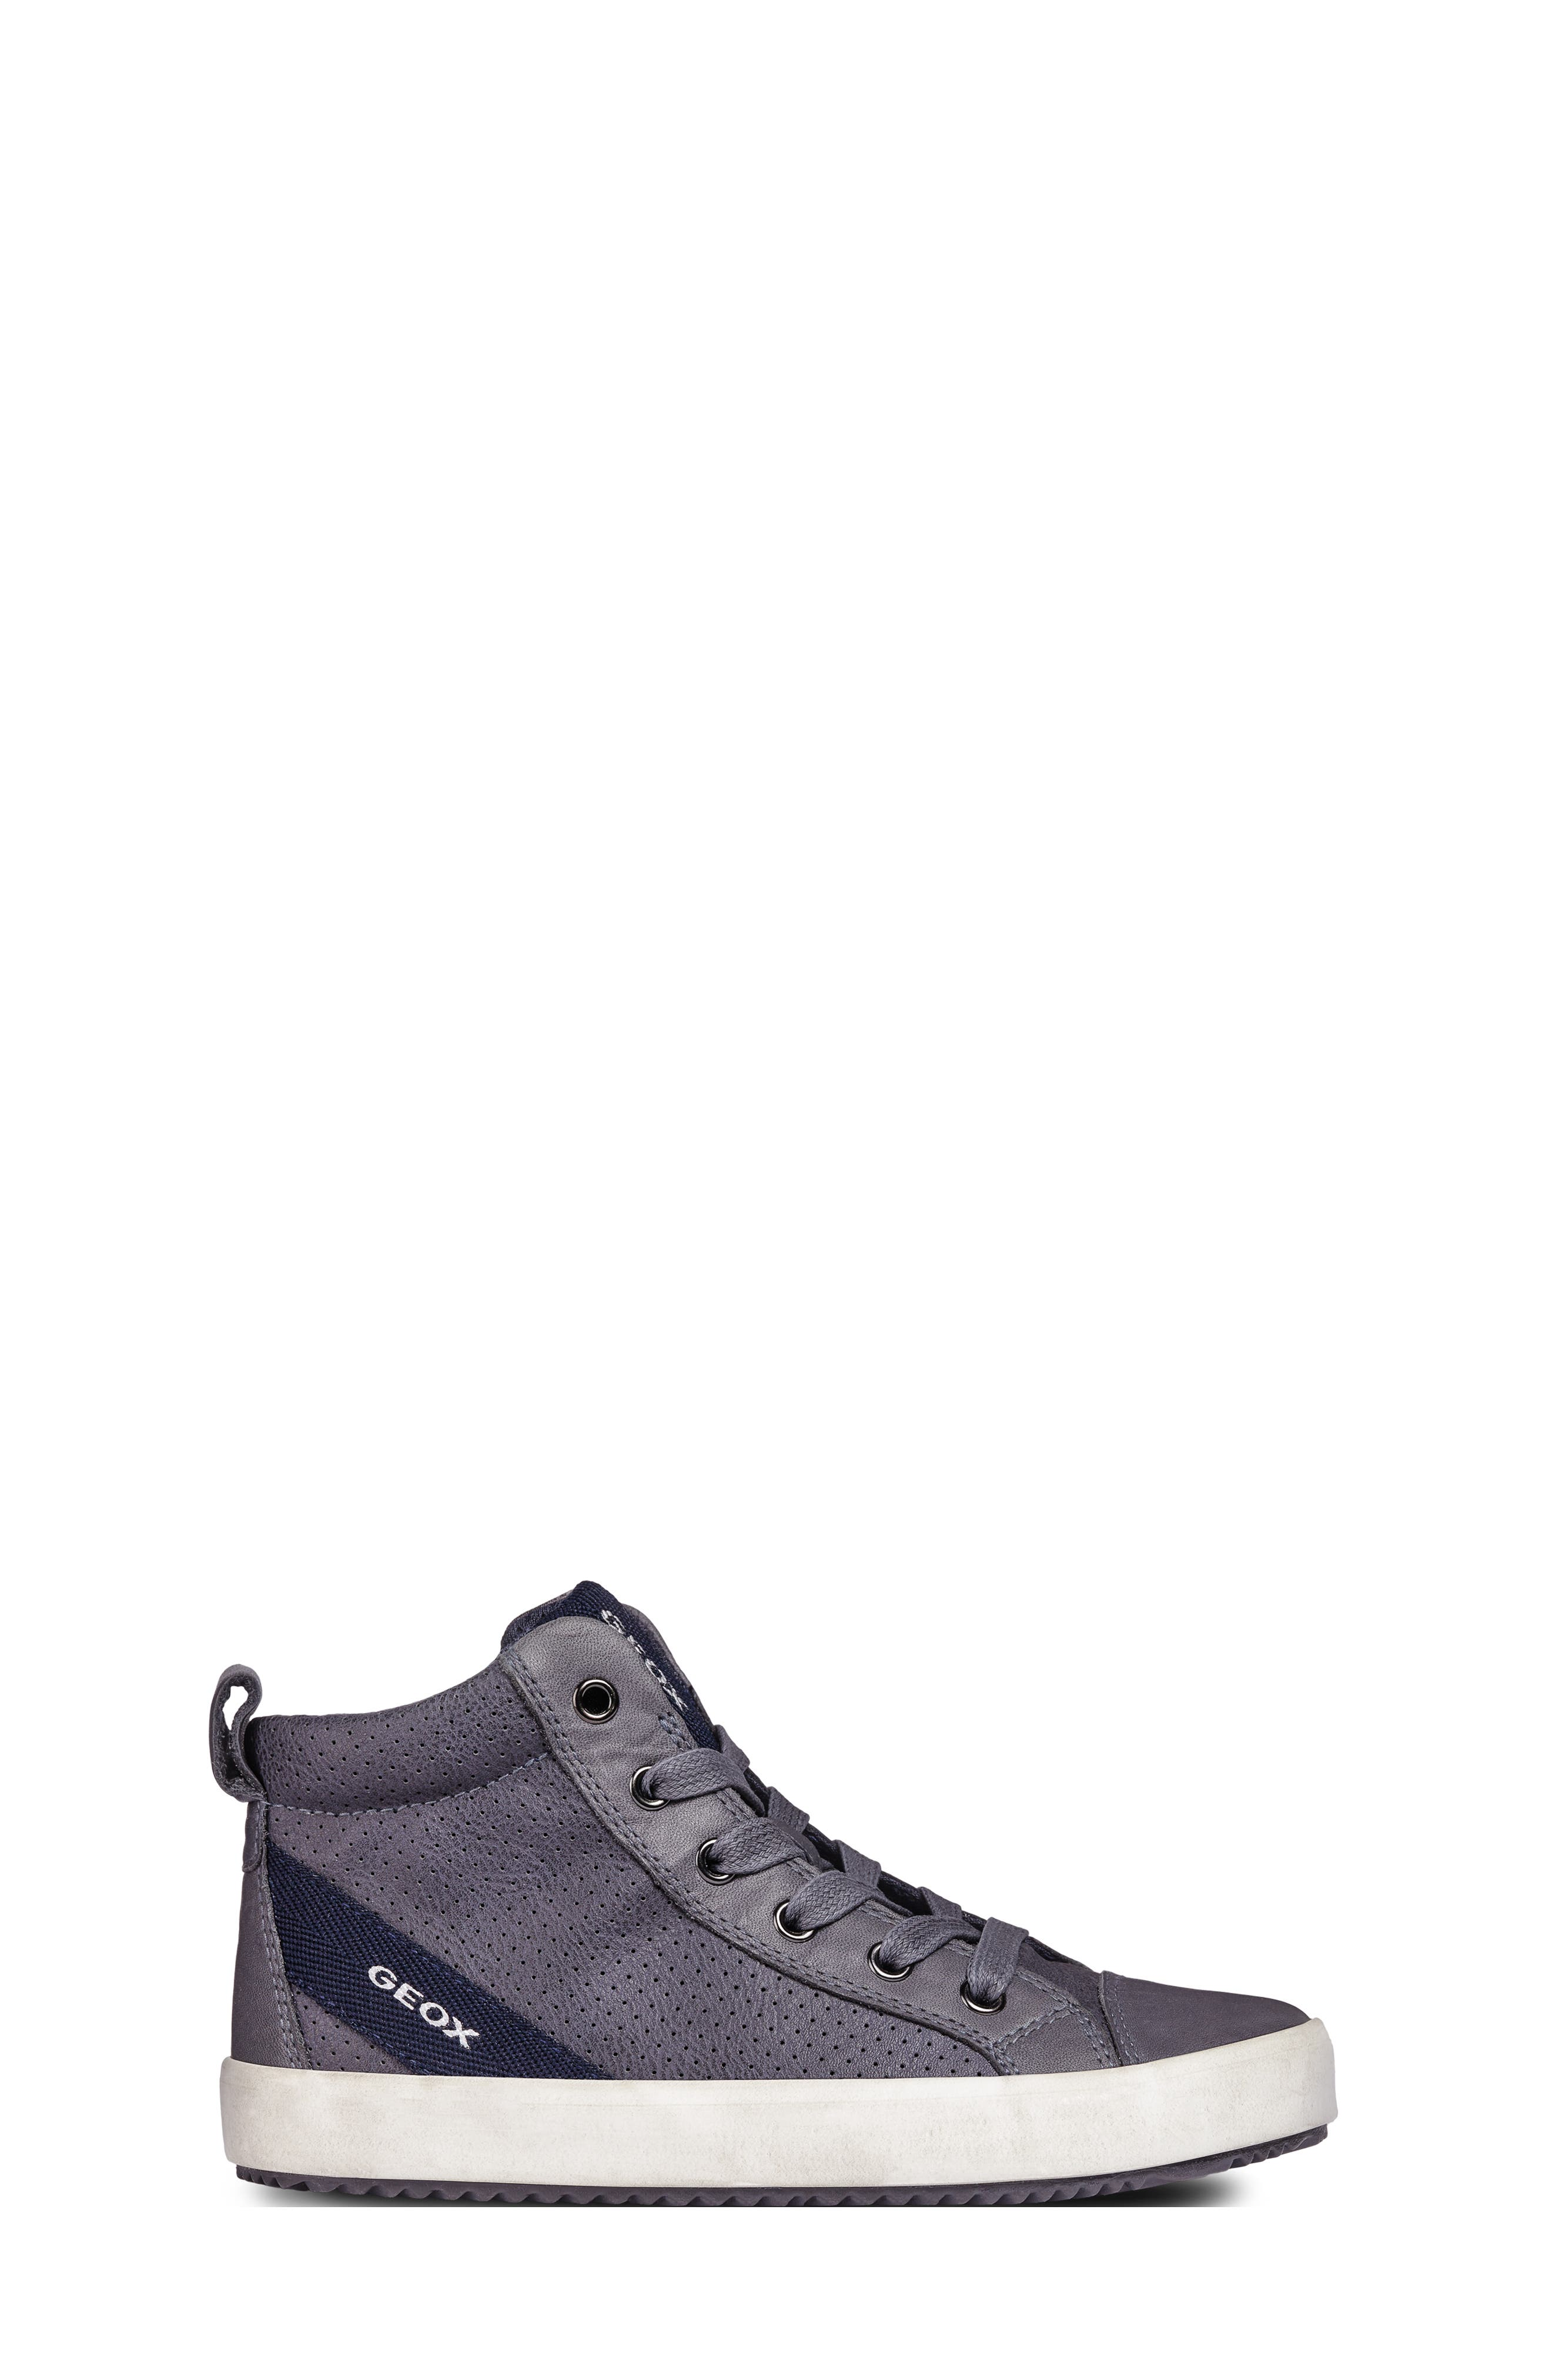 Alonisso High-Top Sneaker,                             Alternate thumbnail 6, color,                             GREY/DARK GREY